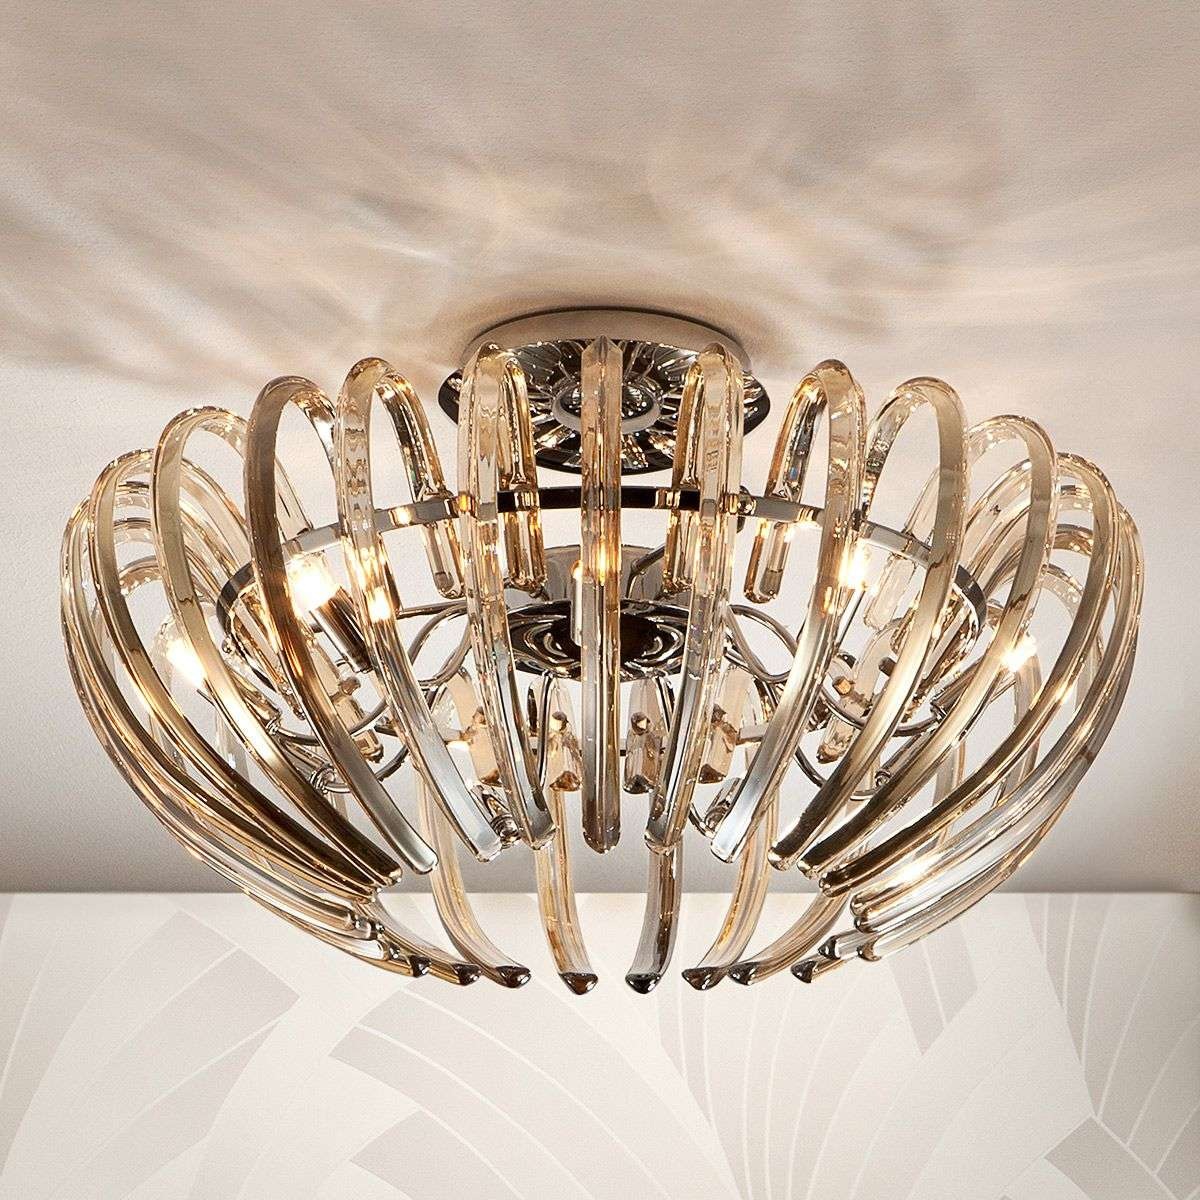 Exquisite Lighting Exquisite Crystal Ceiling Light Ariadna Champagne858217431 Lighting E